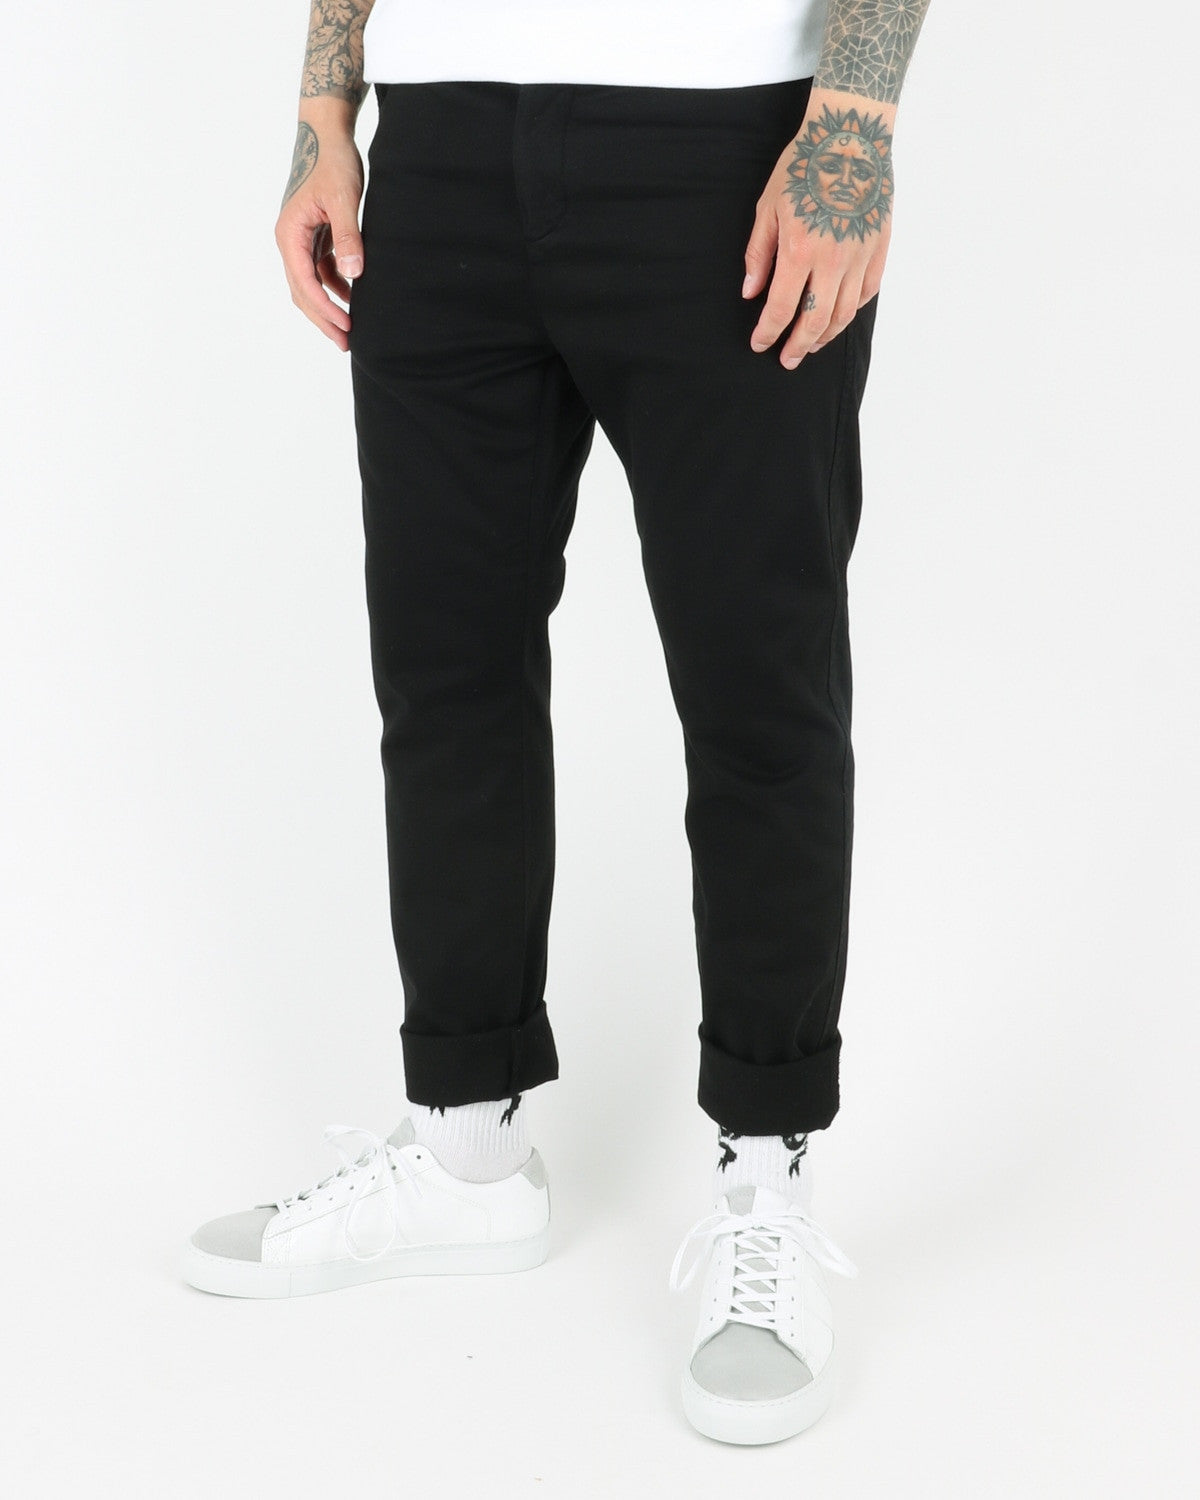 journal clothing_fine pc_pants_black_view_3_3